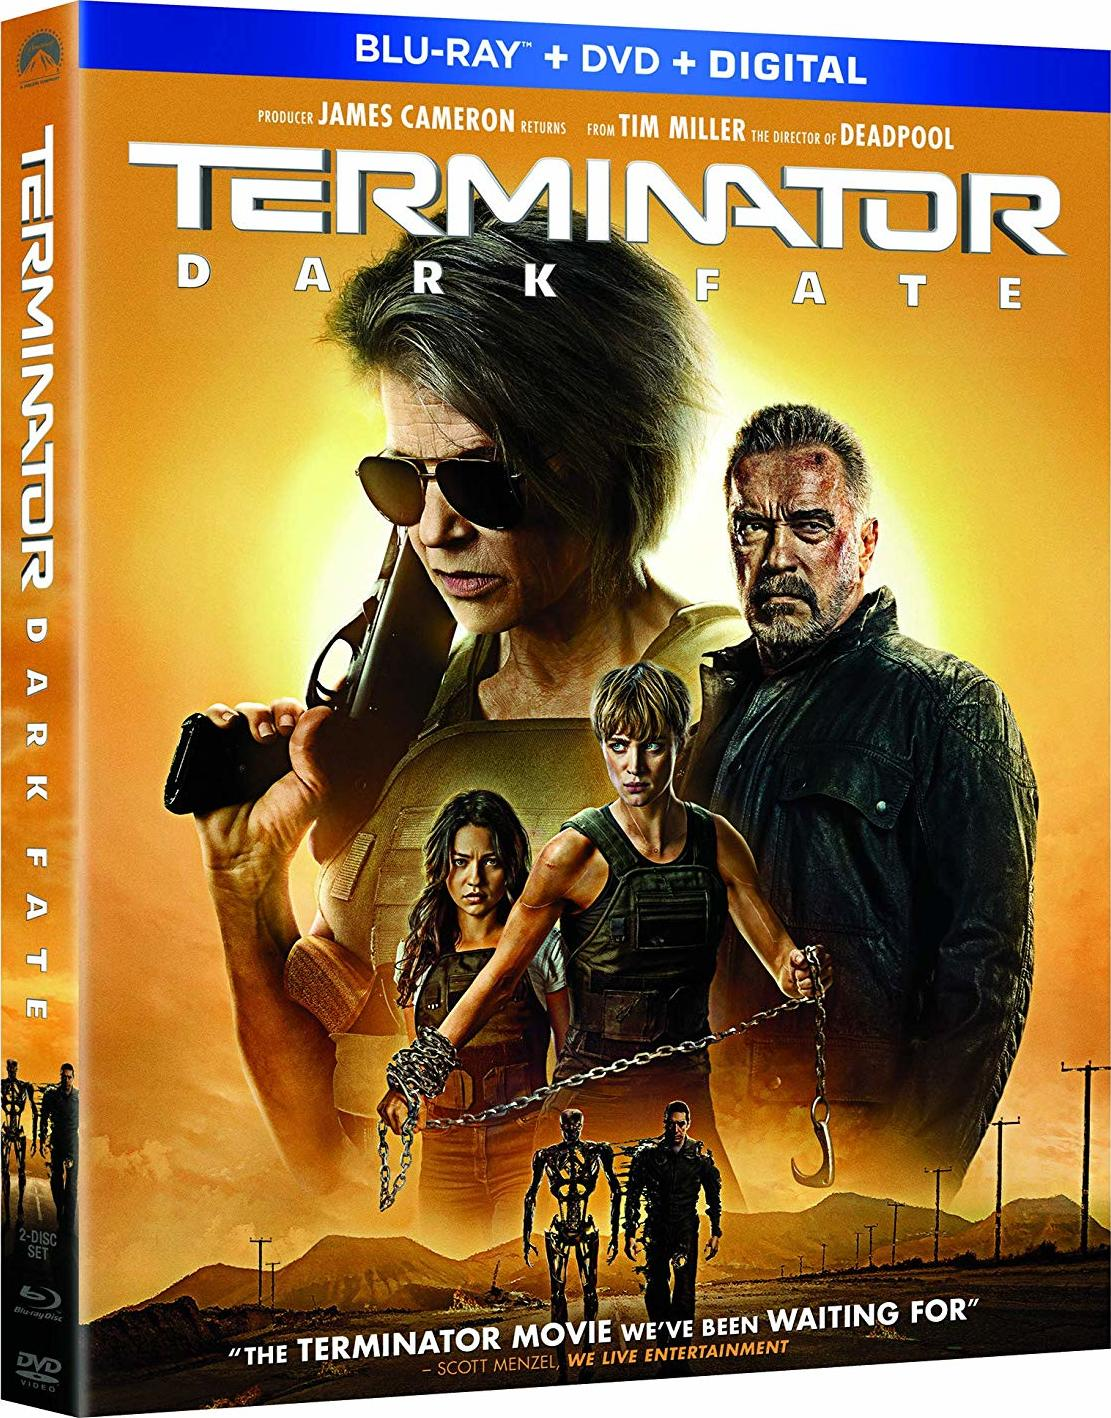 Terminator: Dark Fate, now available on Blu-ray and DVD